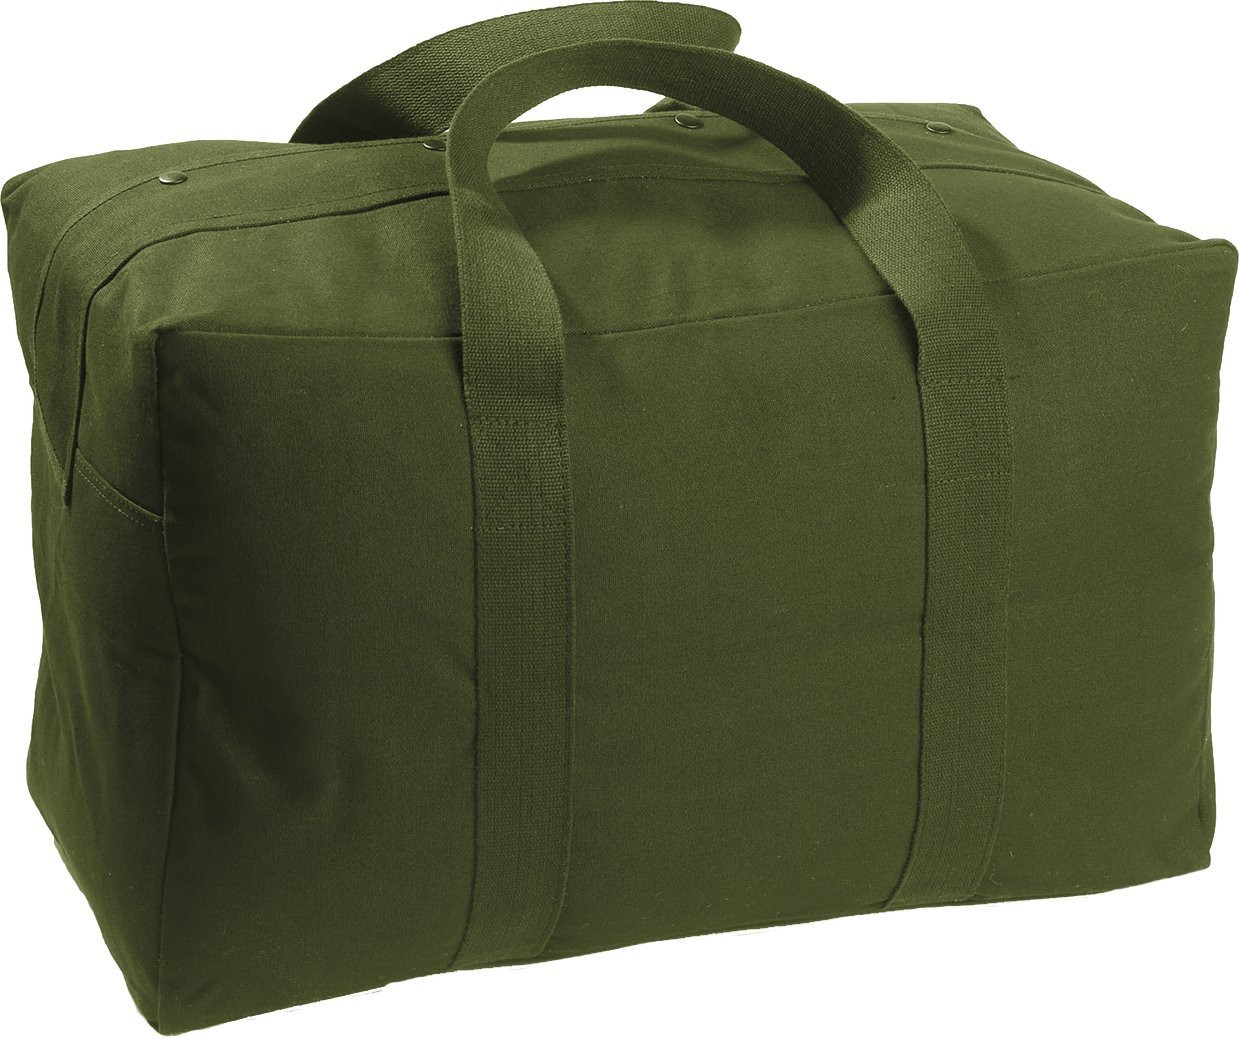 ... Olive Drab Military Parachute Travel Cargo Bag (24